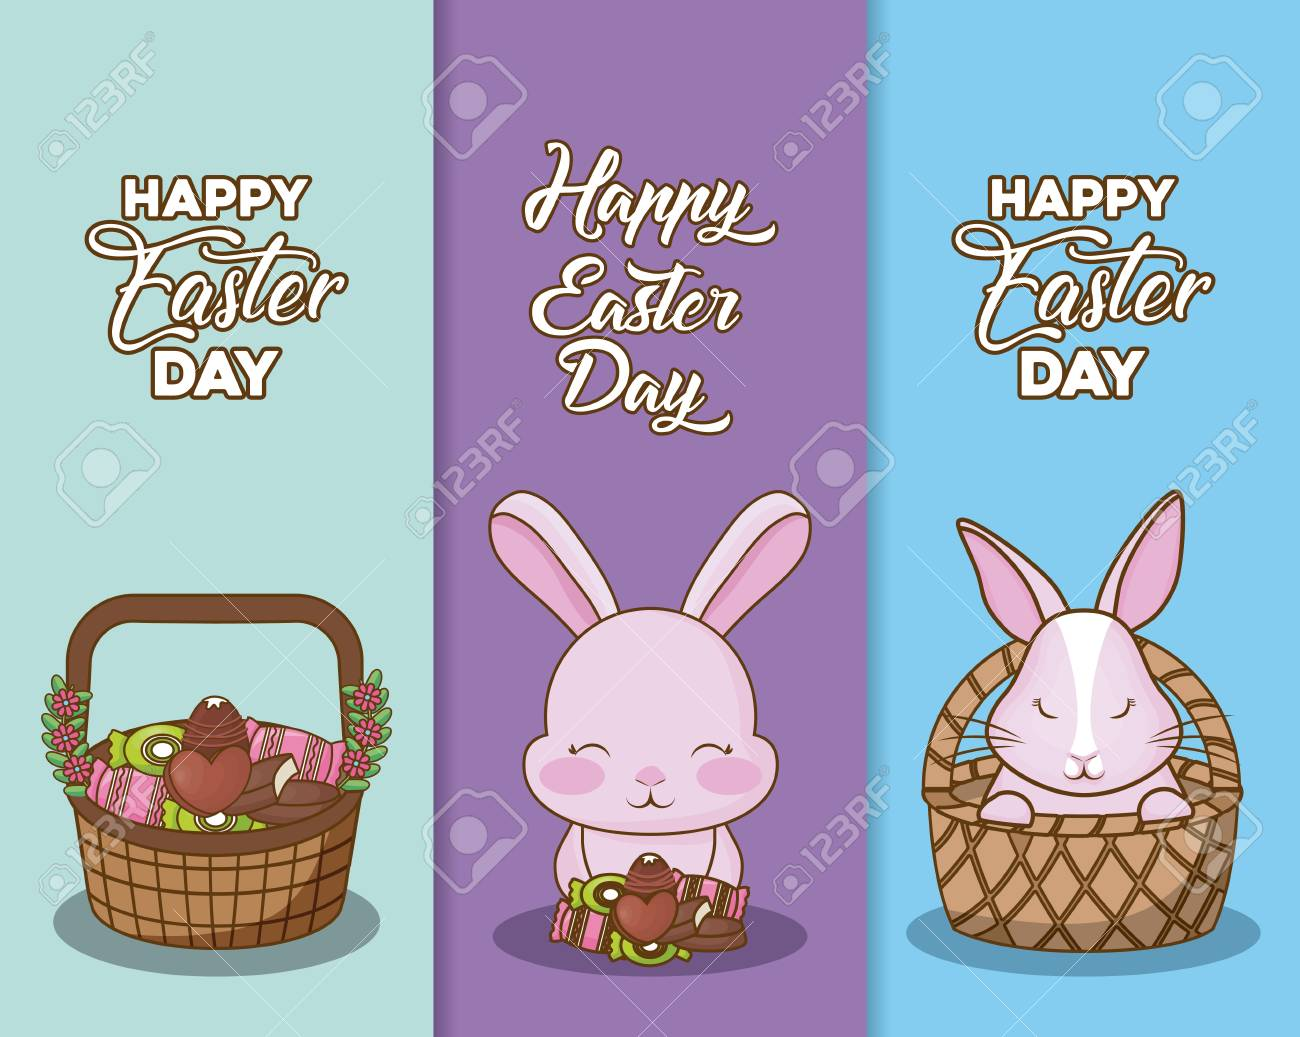 Happy Easter Day Cards Design With Basket With Cute Rabbit And